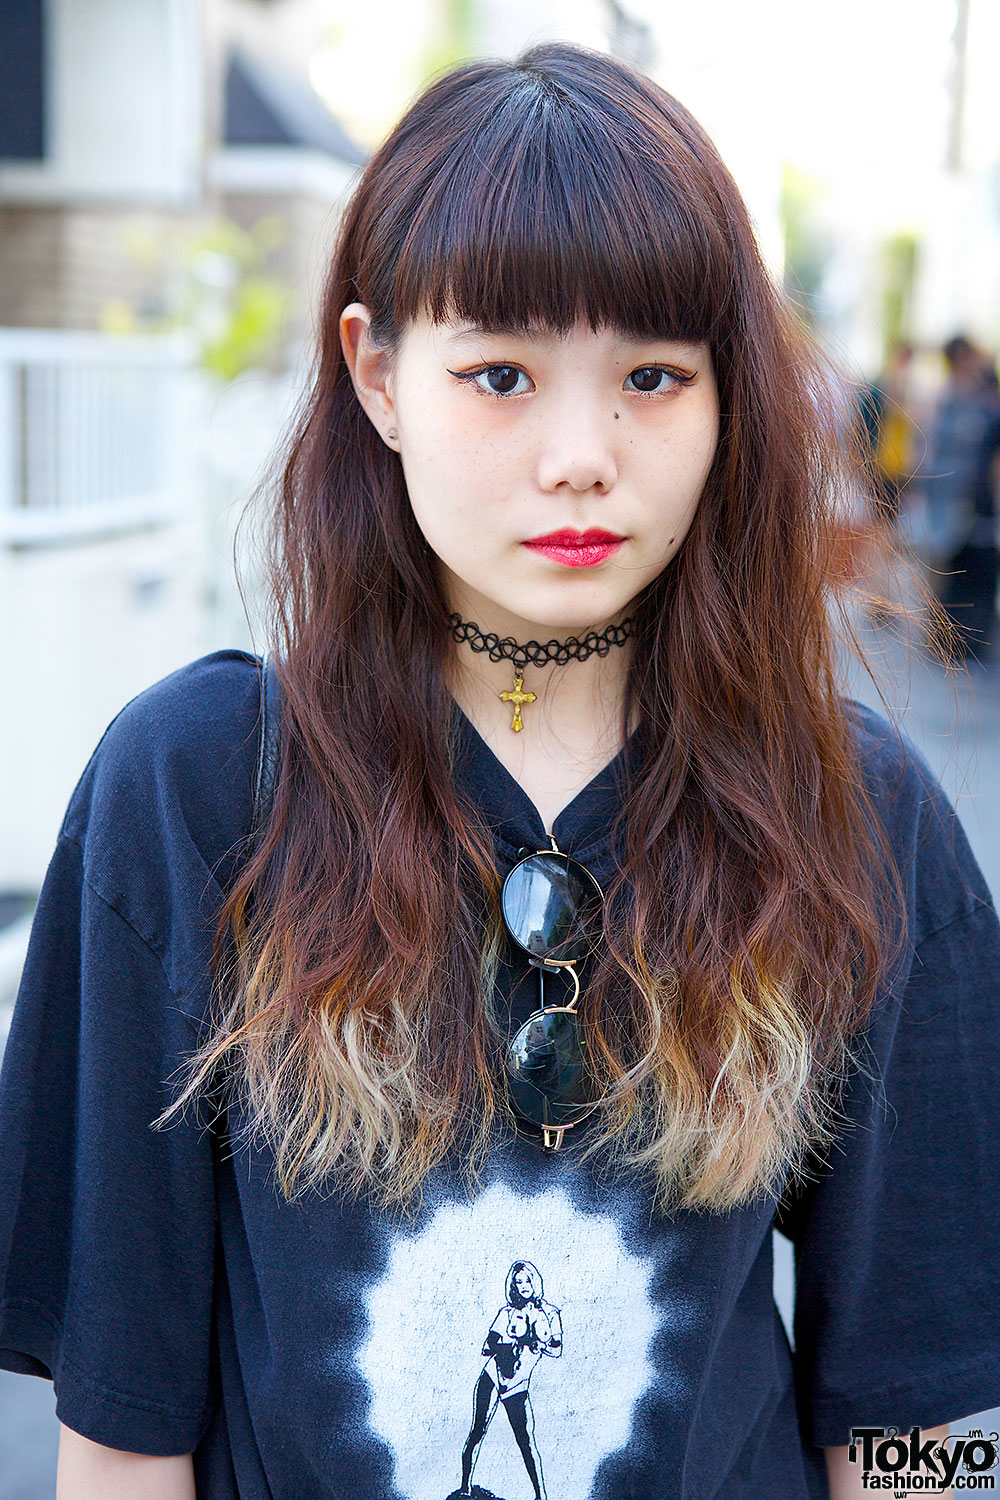 Oversized Band T-shirt w/ Dr. Martens, Choker & Studded Rings in Harajuku